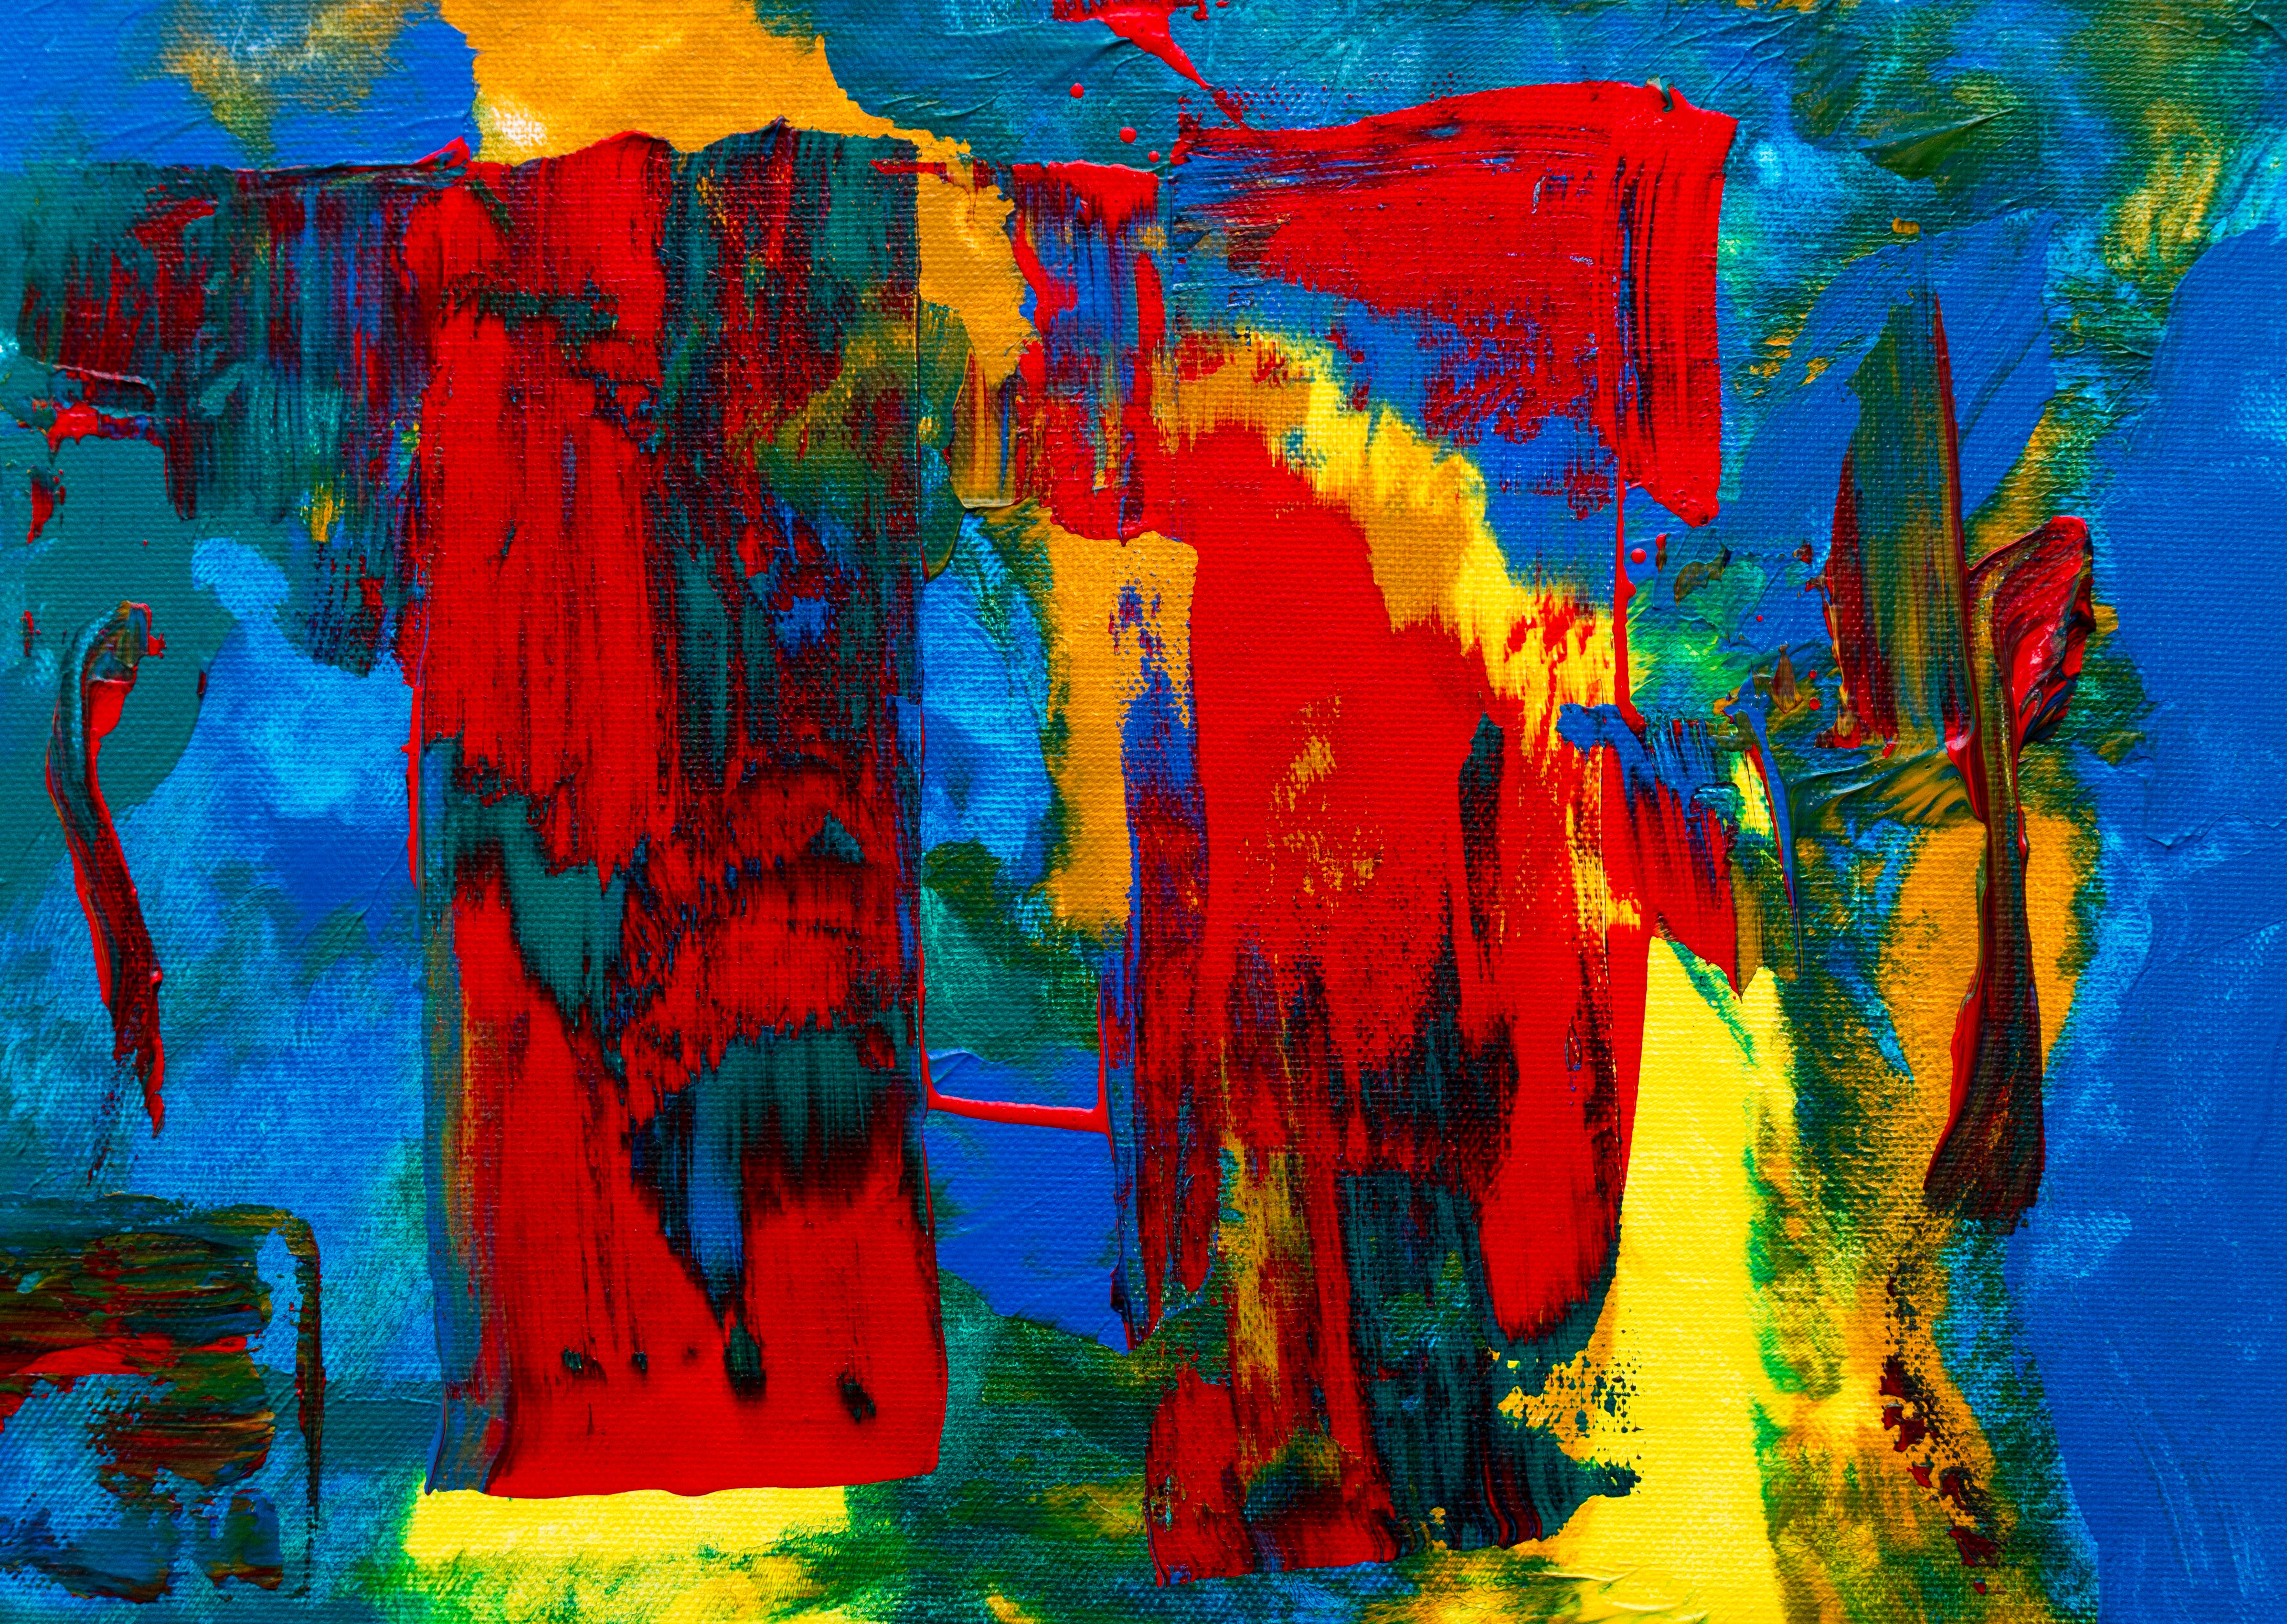 Red, Yellow, Green, and Blue Abstract Painting